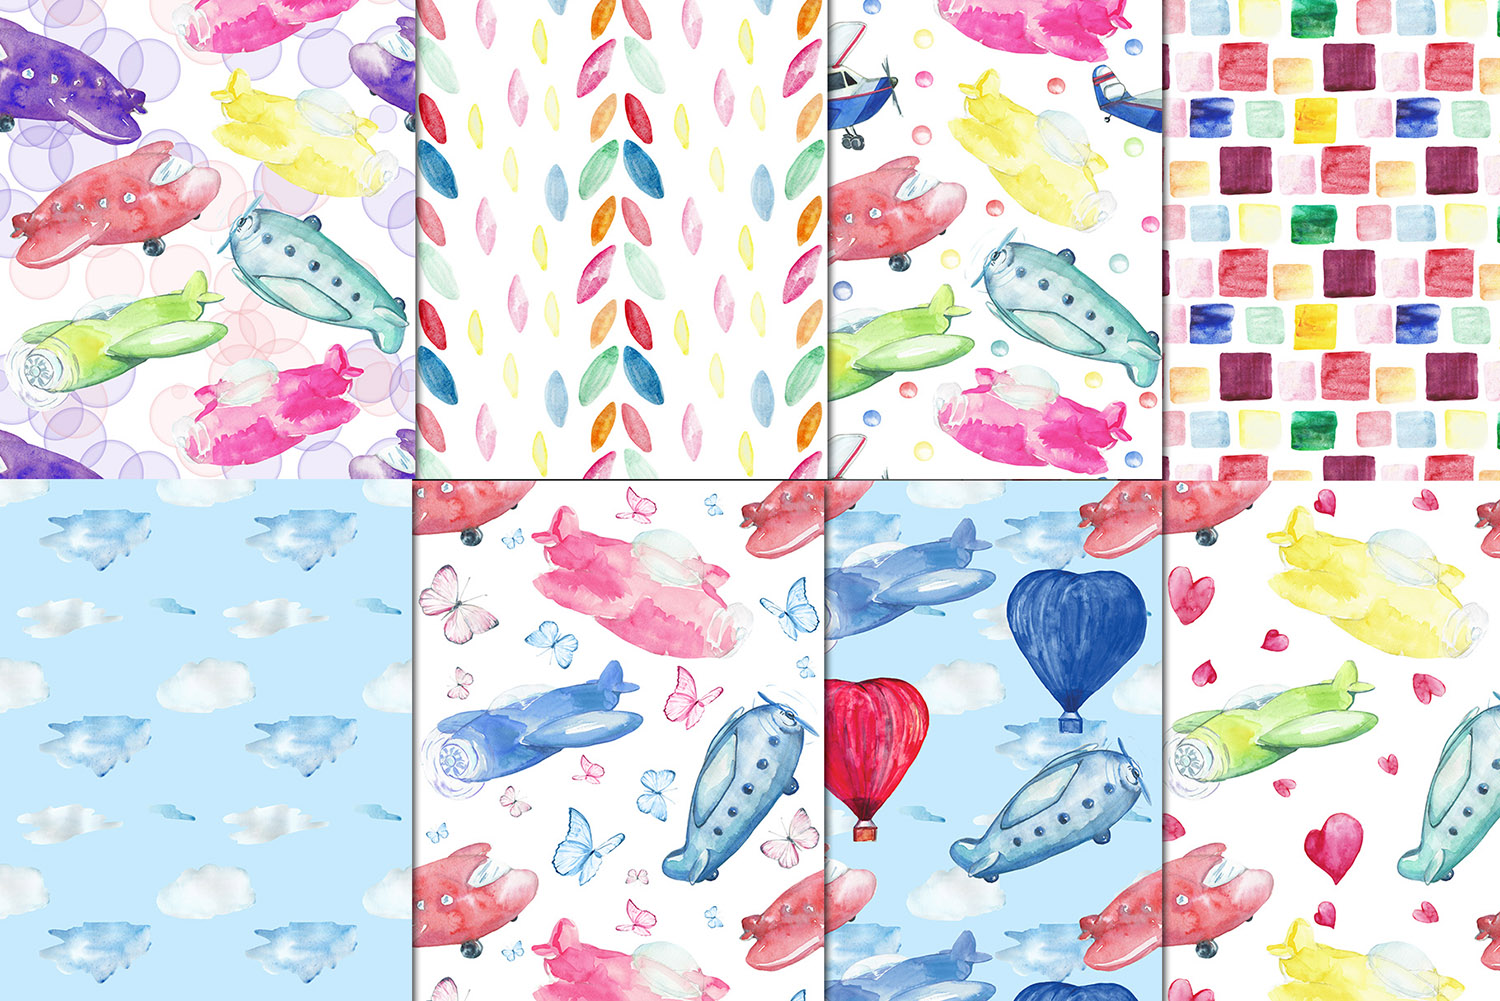 Watercolor Kid's airplanes clipart, patterns example image 4